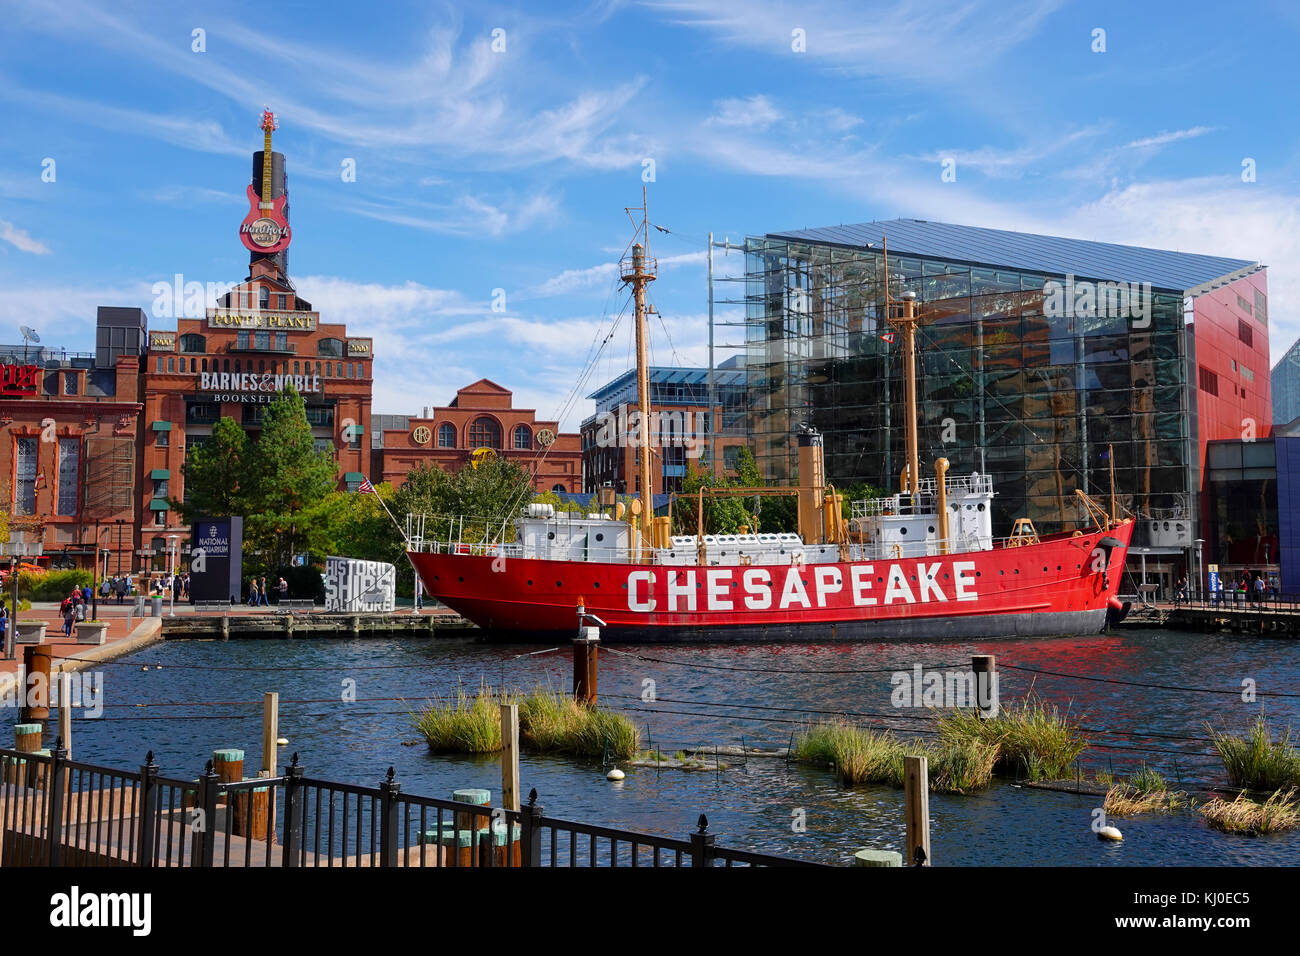 usa-baltimore-maryland-md-inner-harbor-city-waterfront-day-summer-KJ0EC5.jpg